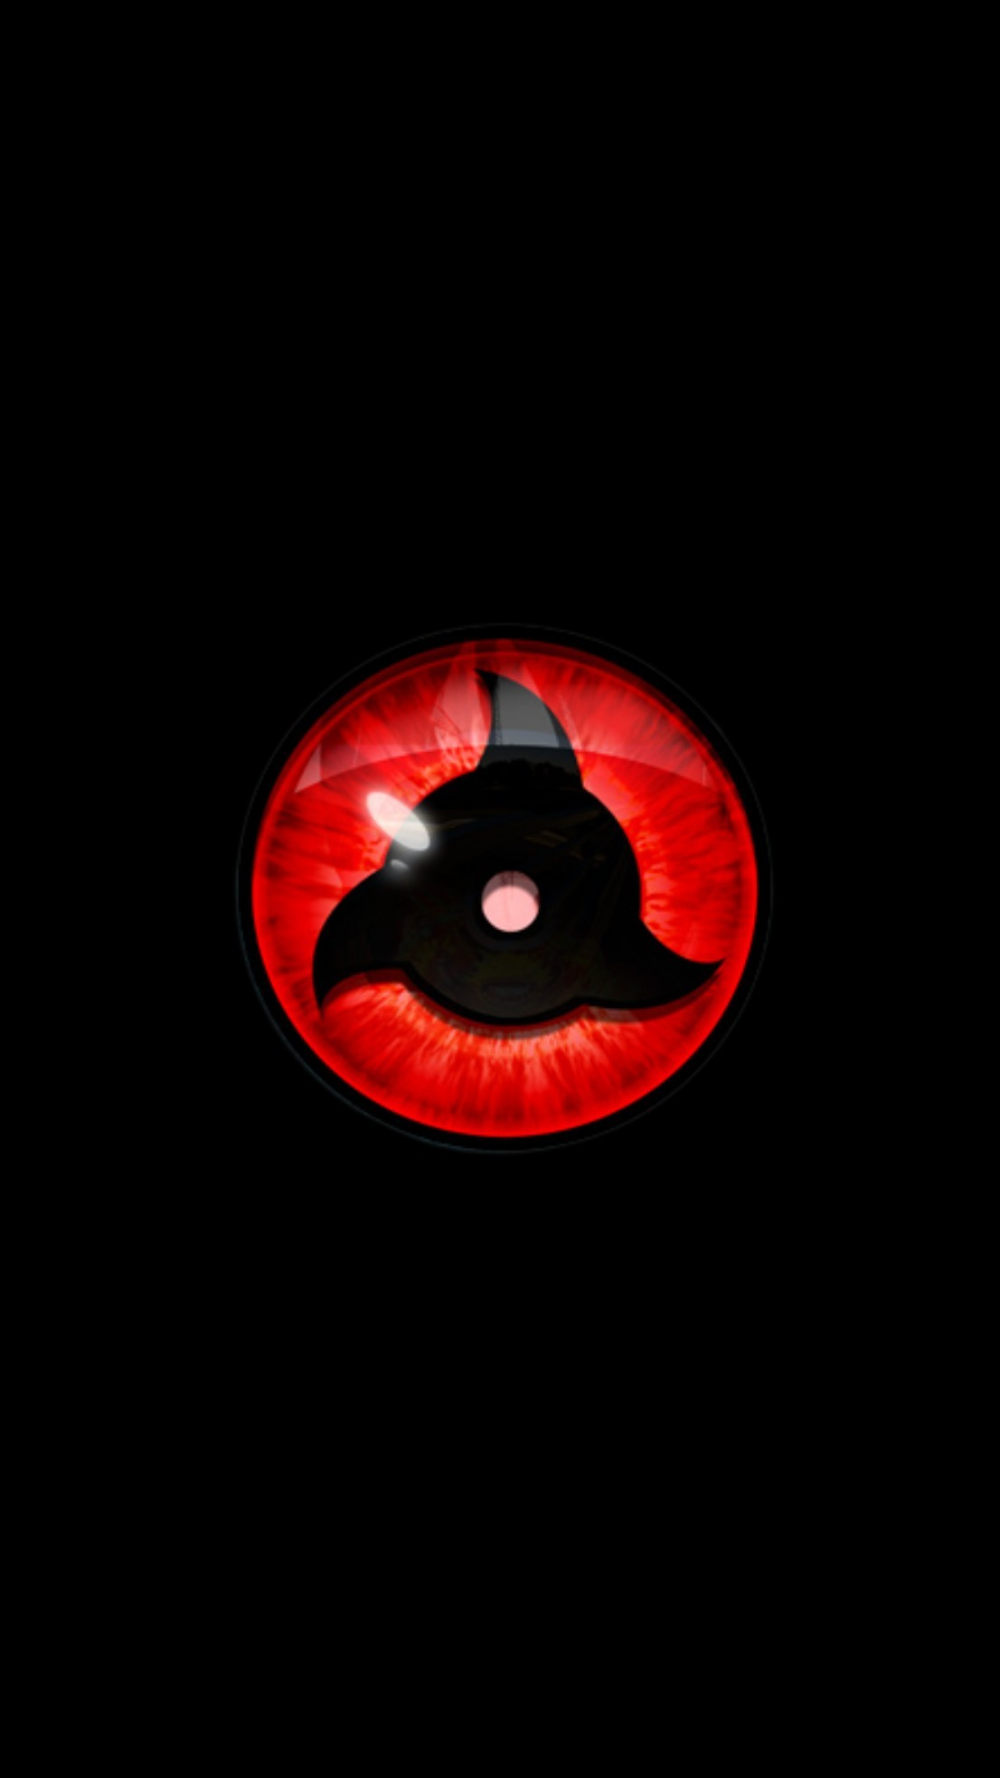 Anime Eyes Wallpaper Android Top Anime Wallpaper In 2020 Eyes Wallpaper Sharingan Wallpapers Sharingan Eyes